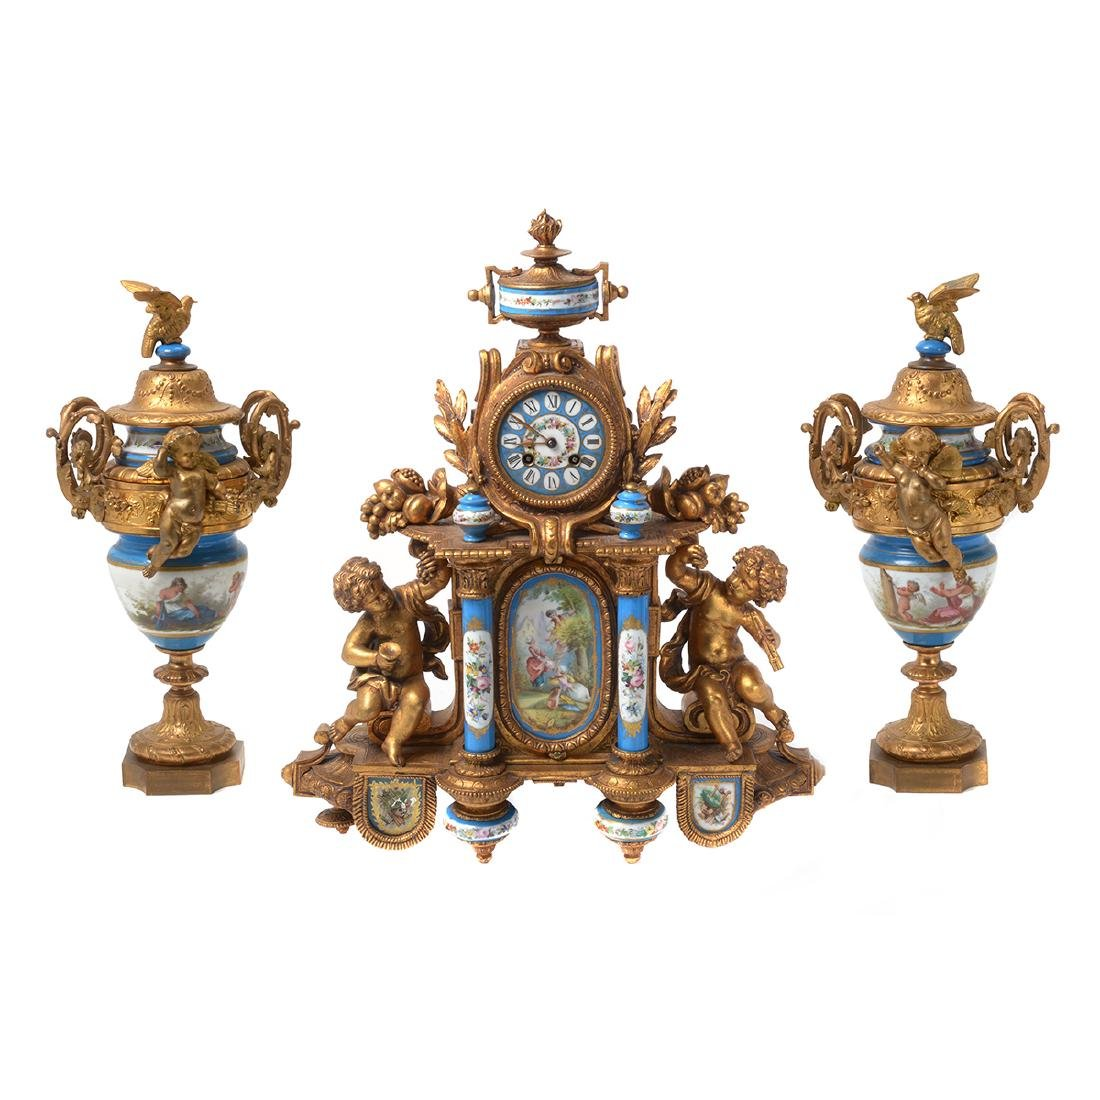 Rococo Style Gilt Metal and Ceramic Clock and Garniture